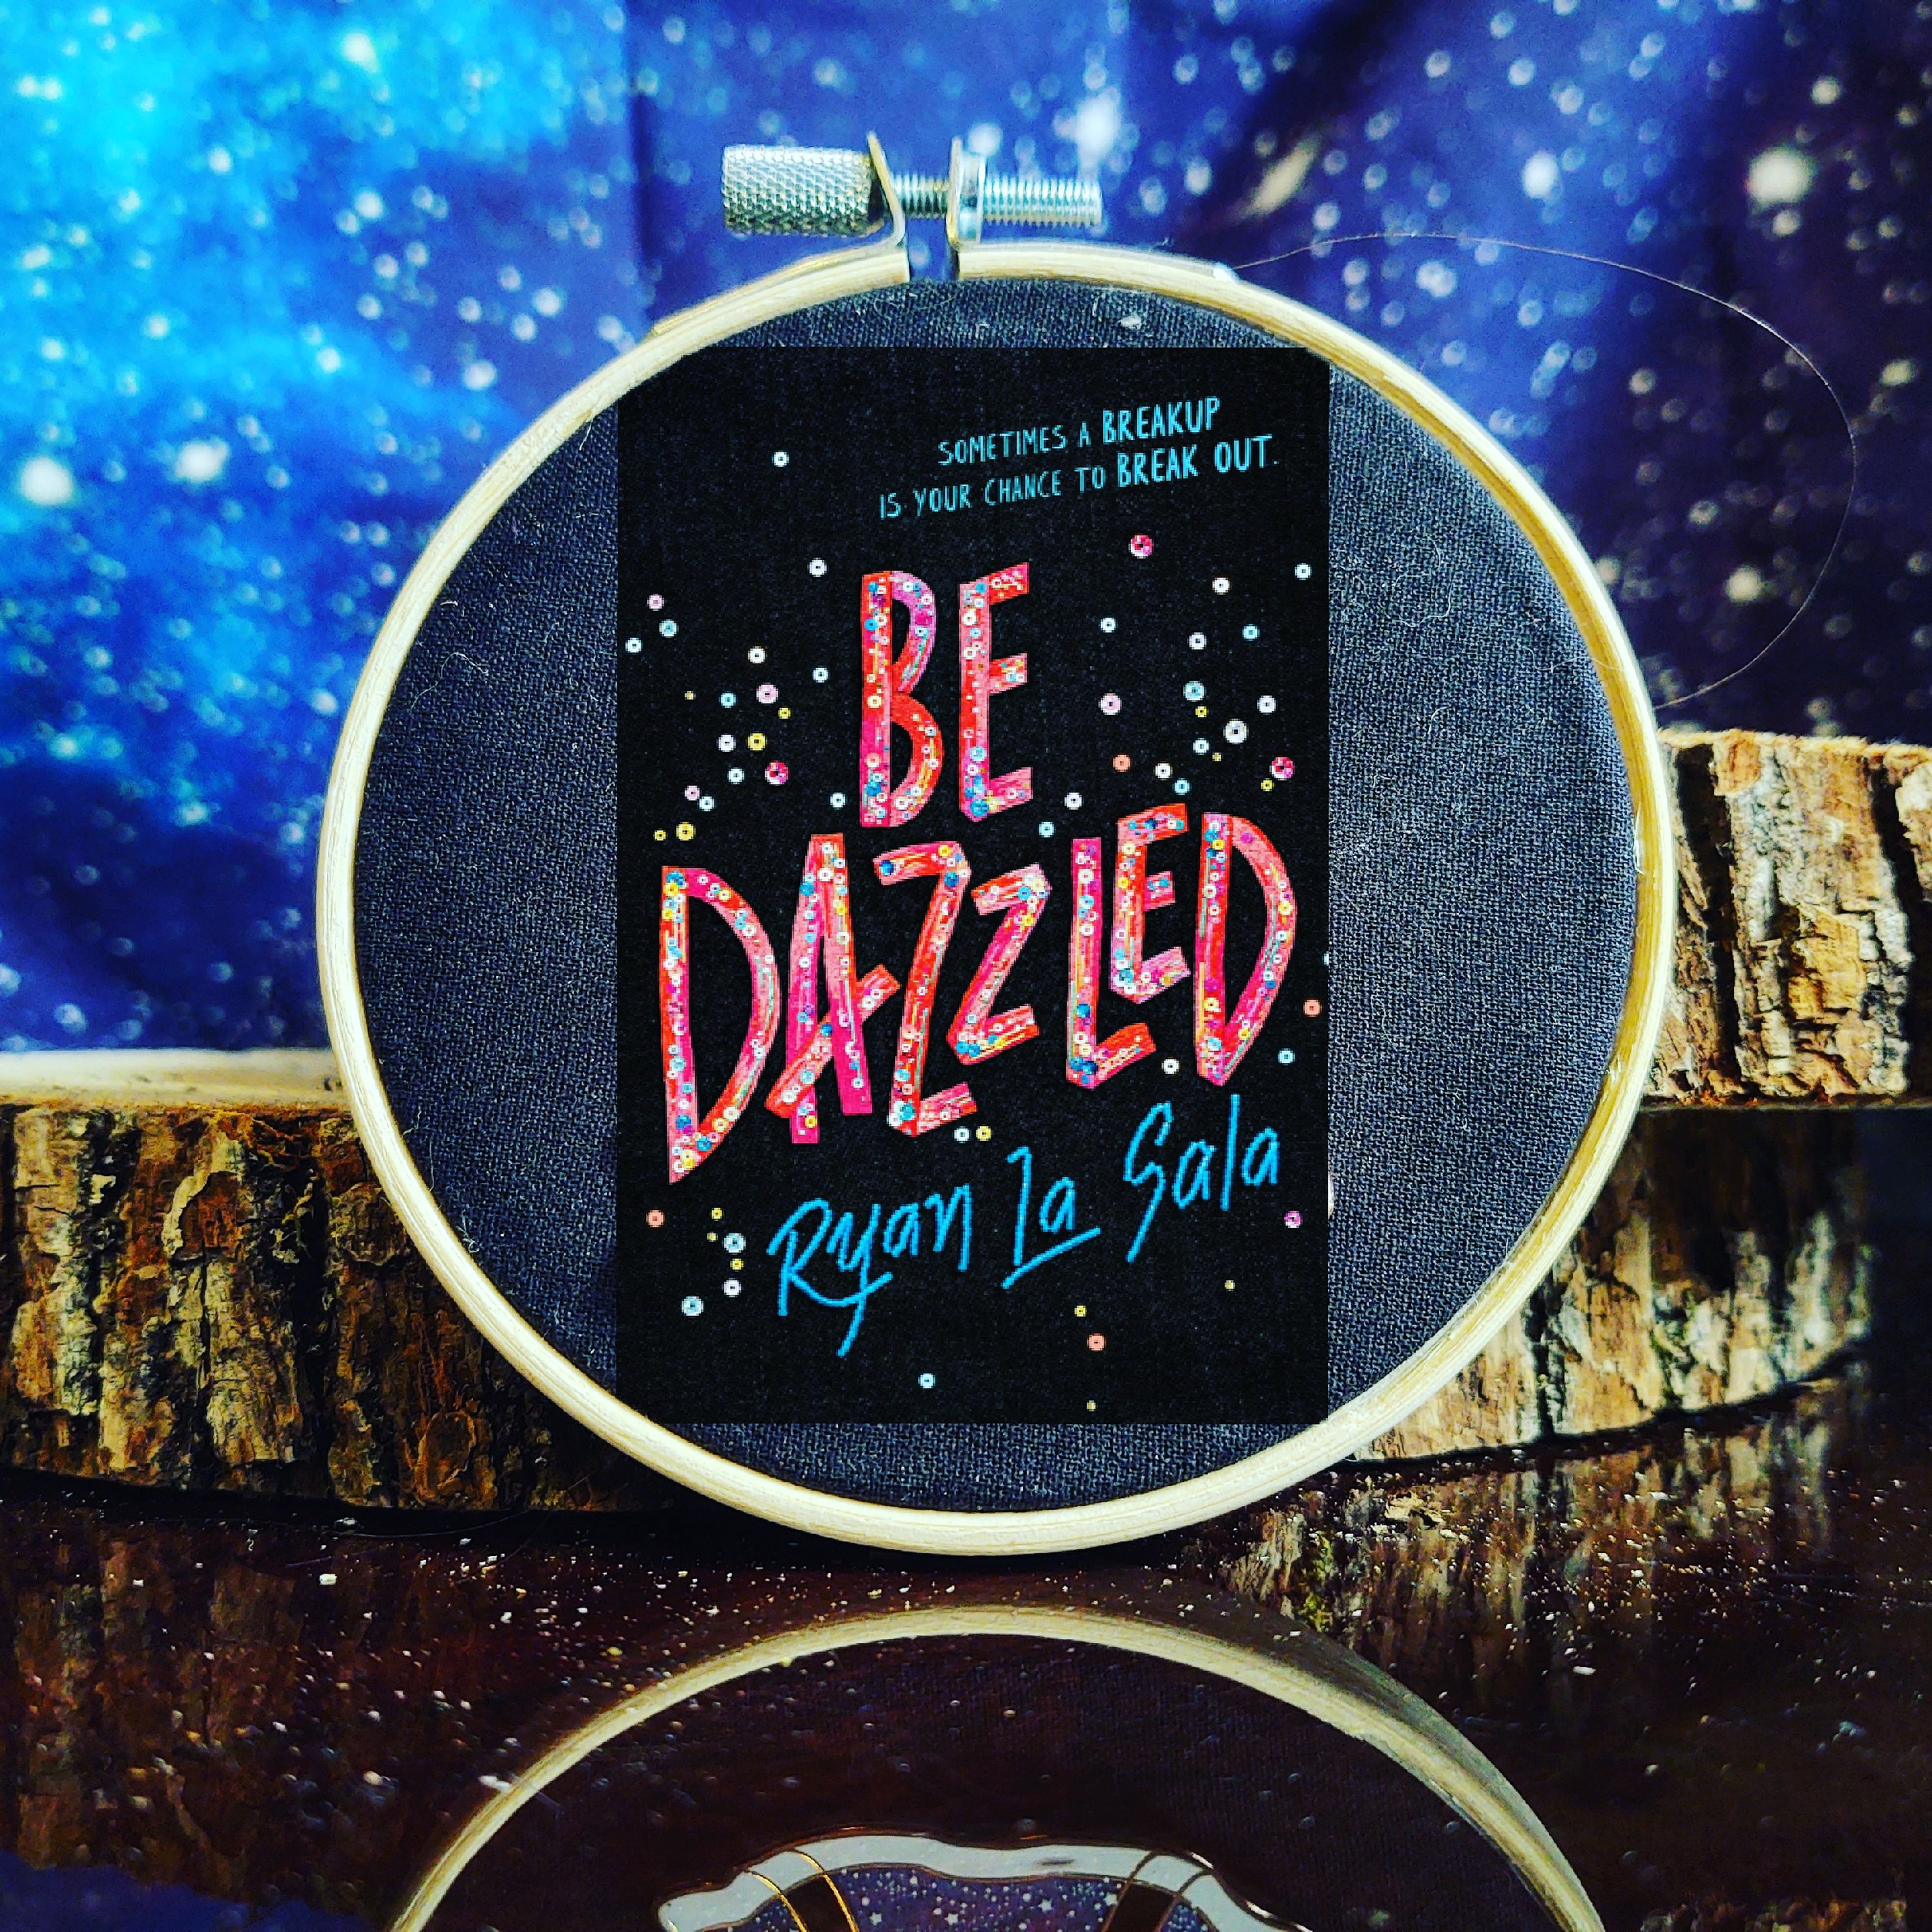 Be Dazzled by Ryan La Sala